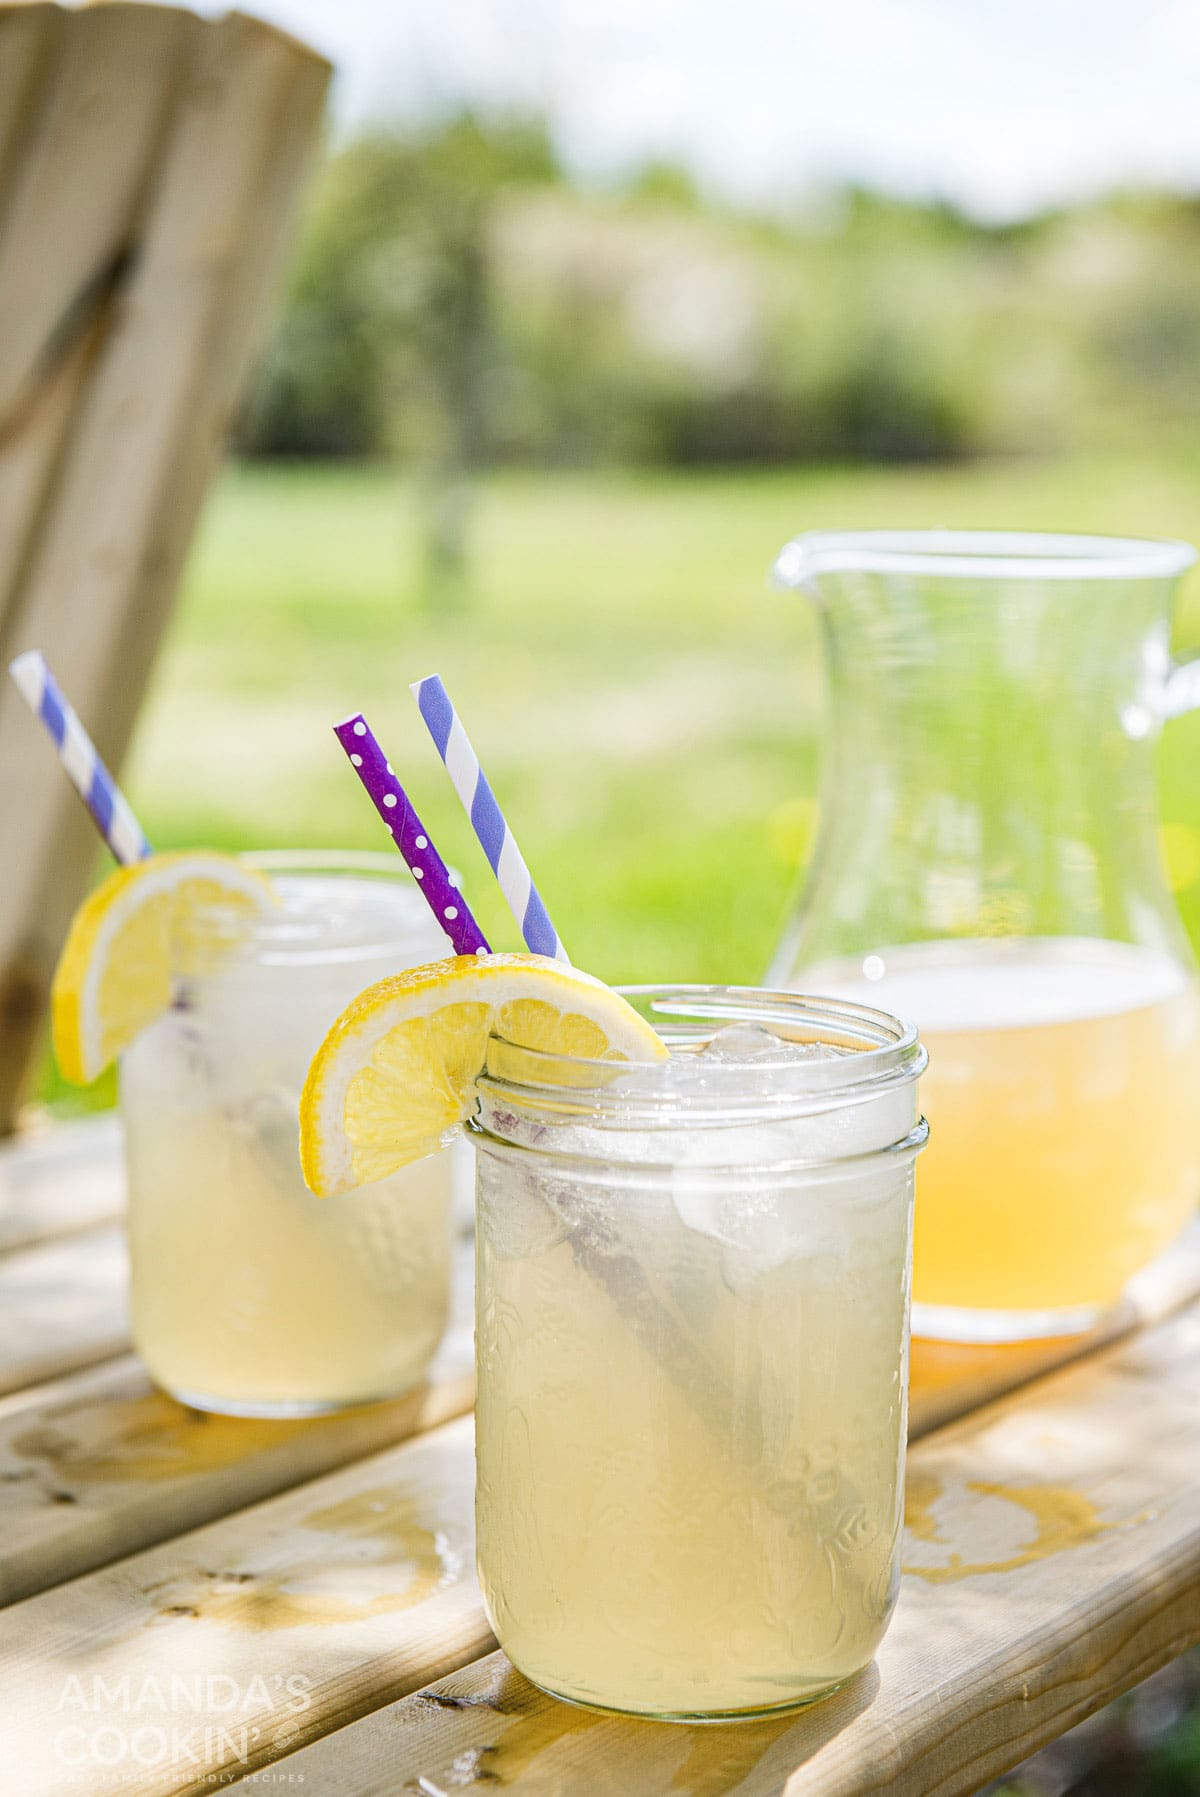 mason jars filled with lynchburg lemonade on an outdoor table with pitcher in the background